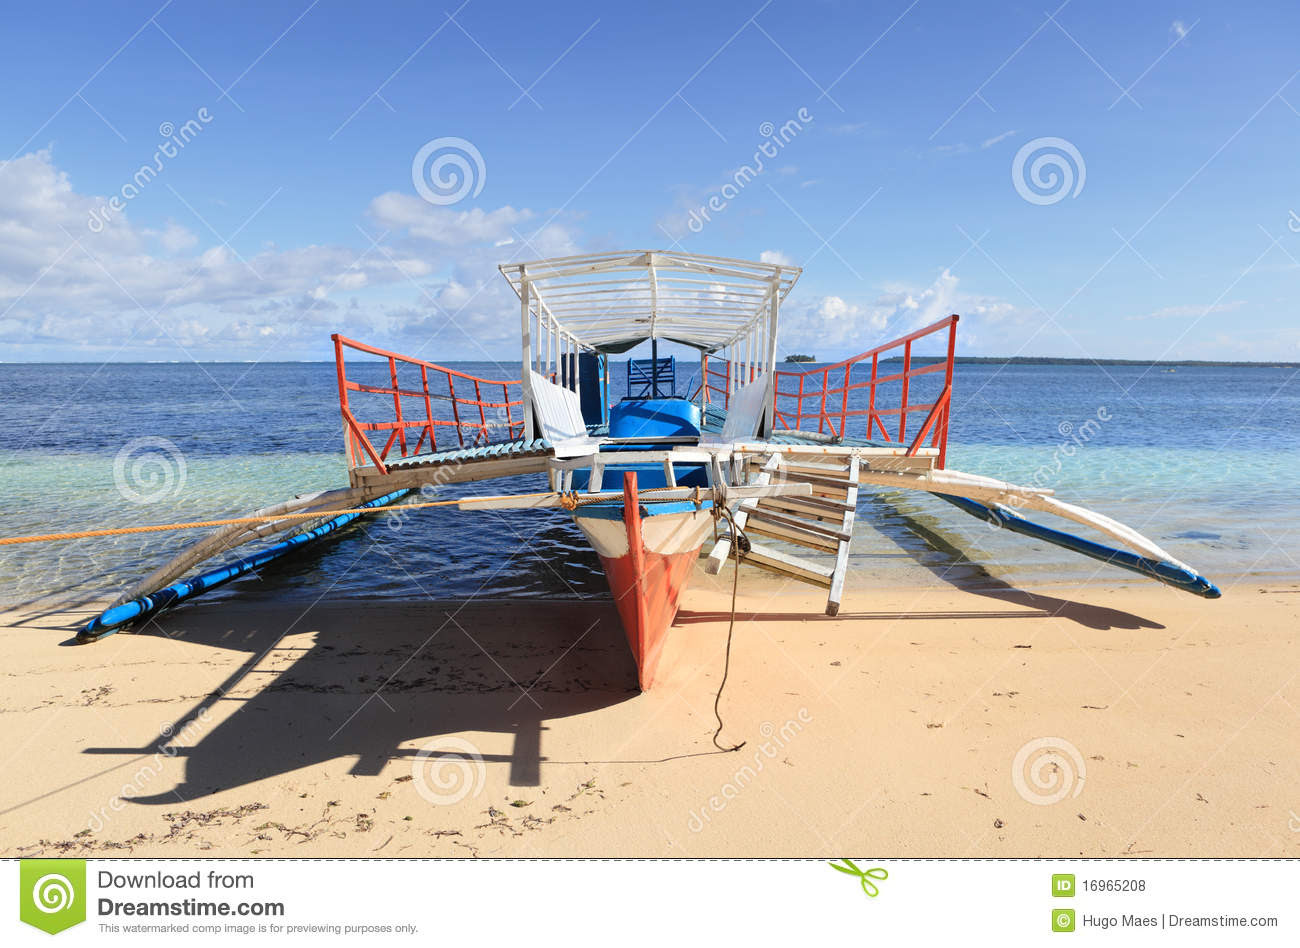 typical local bangka outrigger vessel or boat as used for passenger